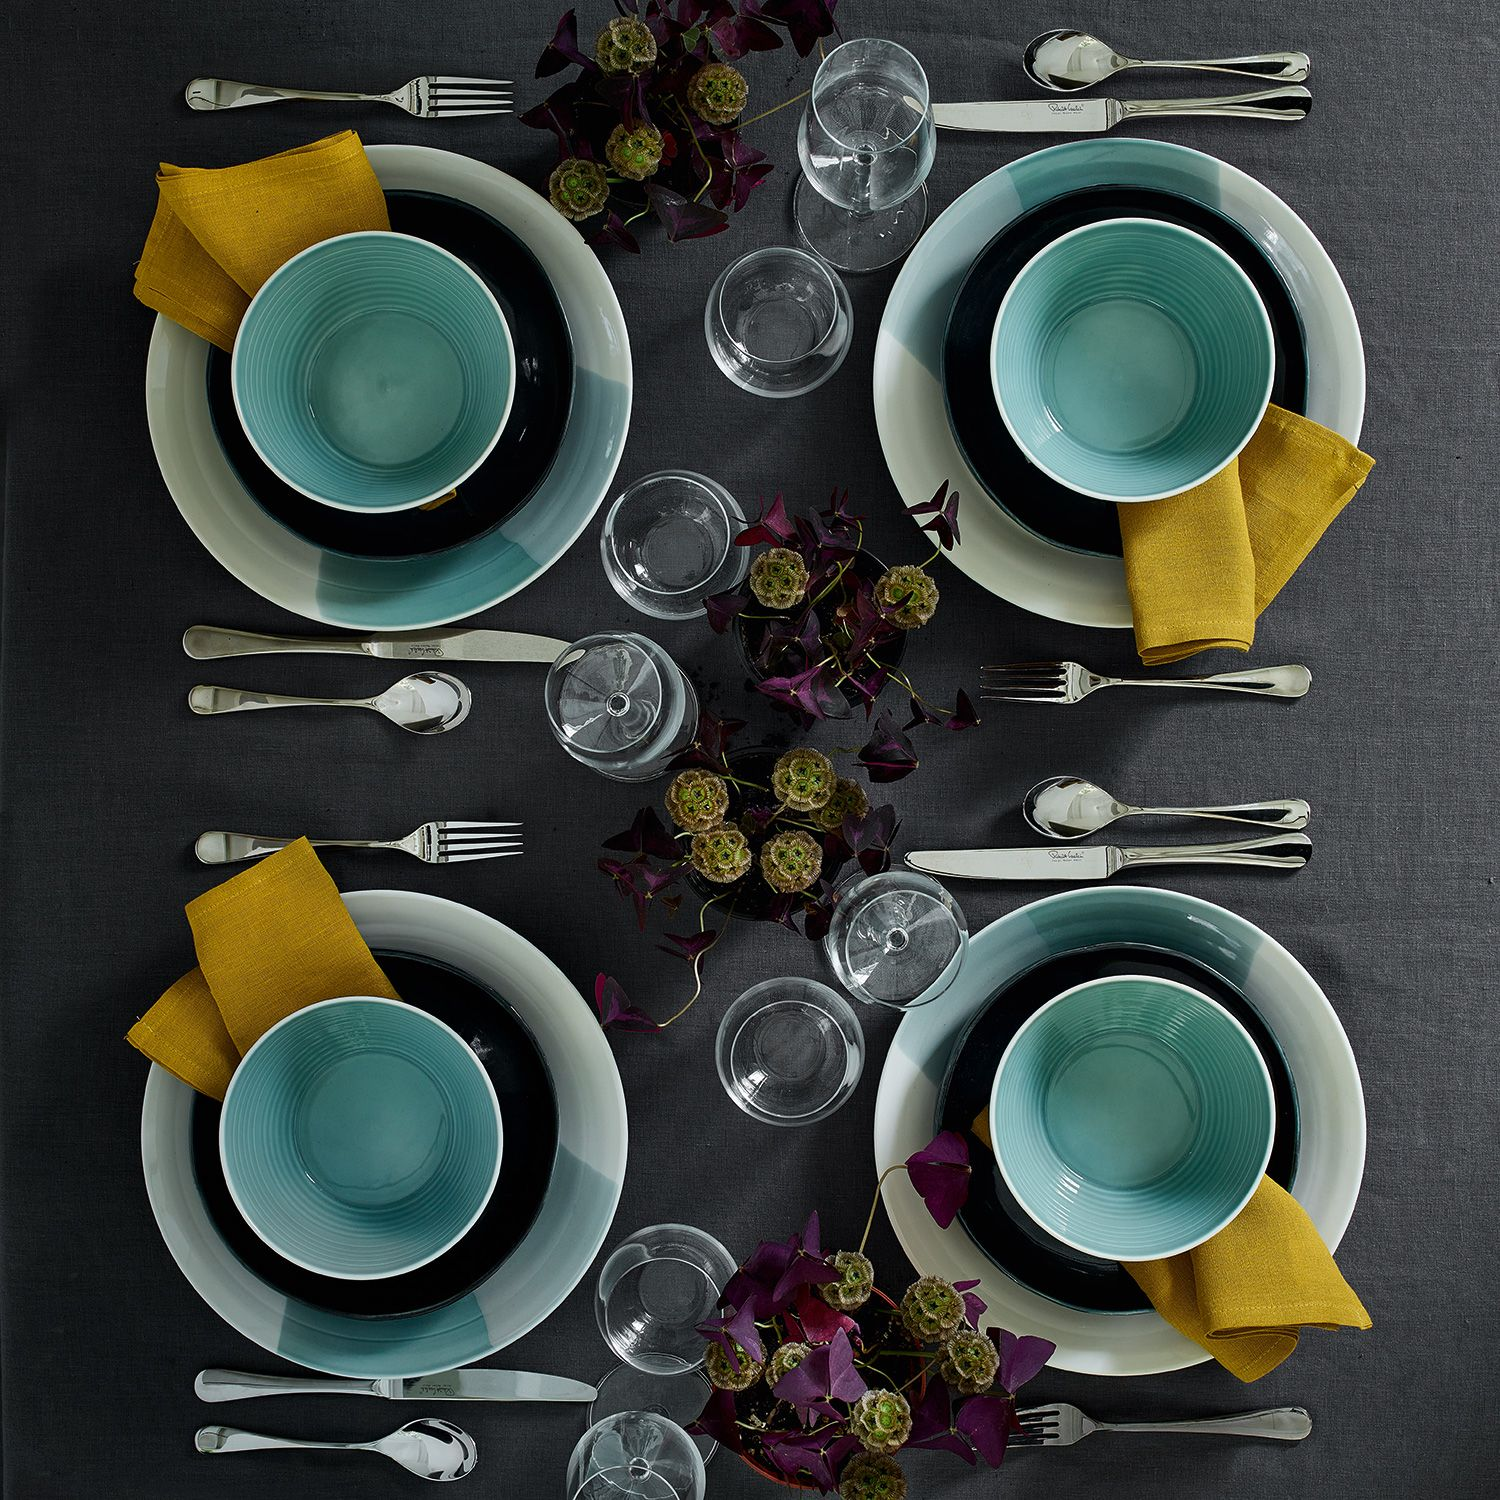 Image of Tableware